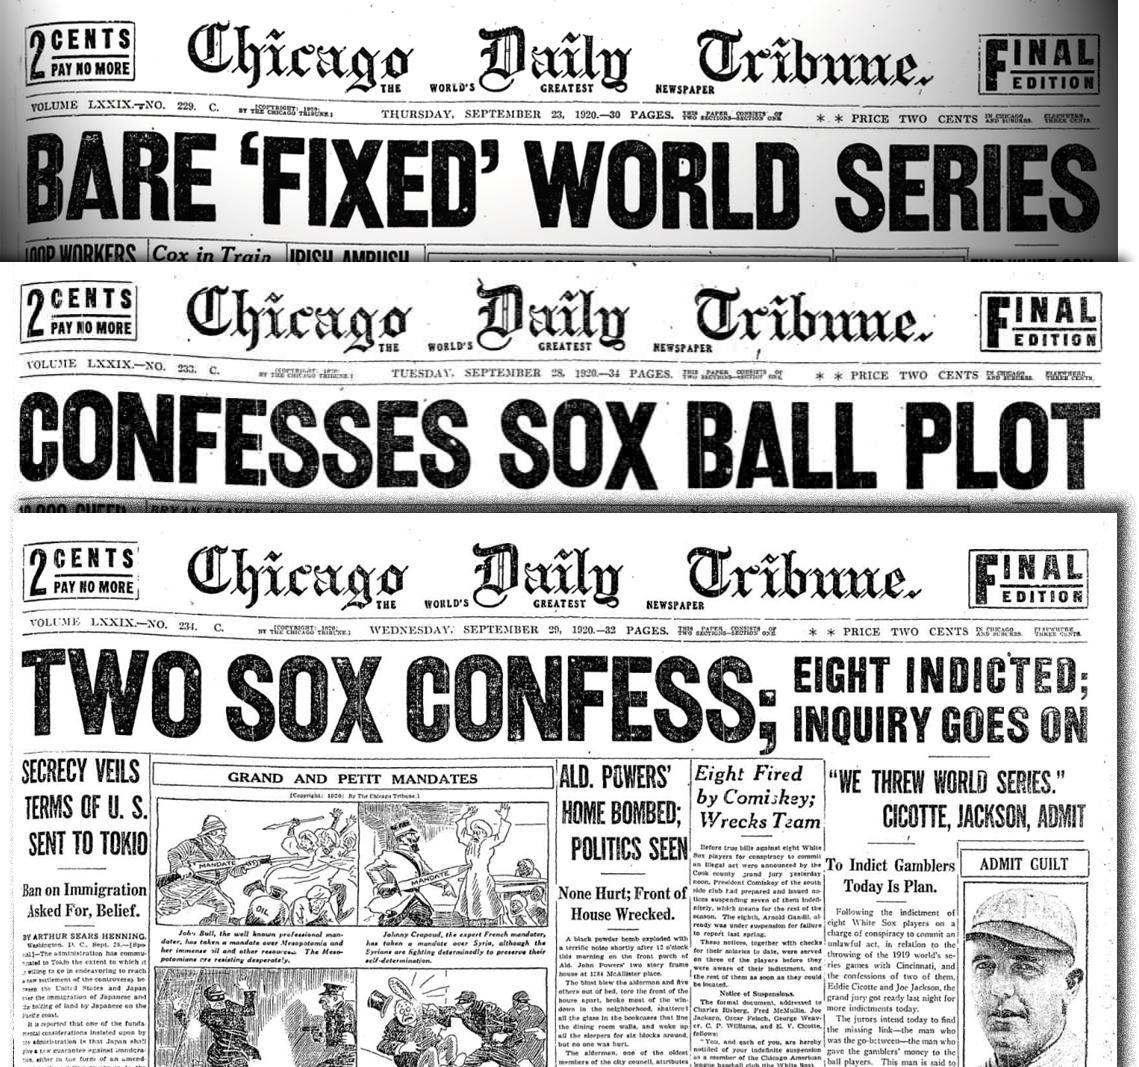 1919 world series essay From the beginning of time, greed and money has motivated man above all else  it seems that in the day that we live in, there is corruption and foul-play.